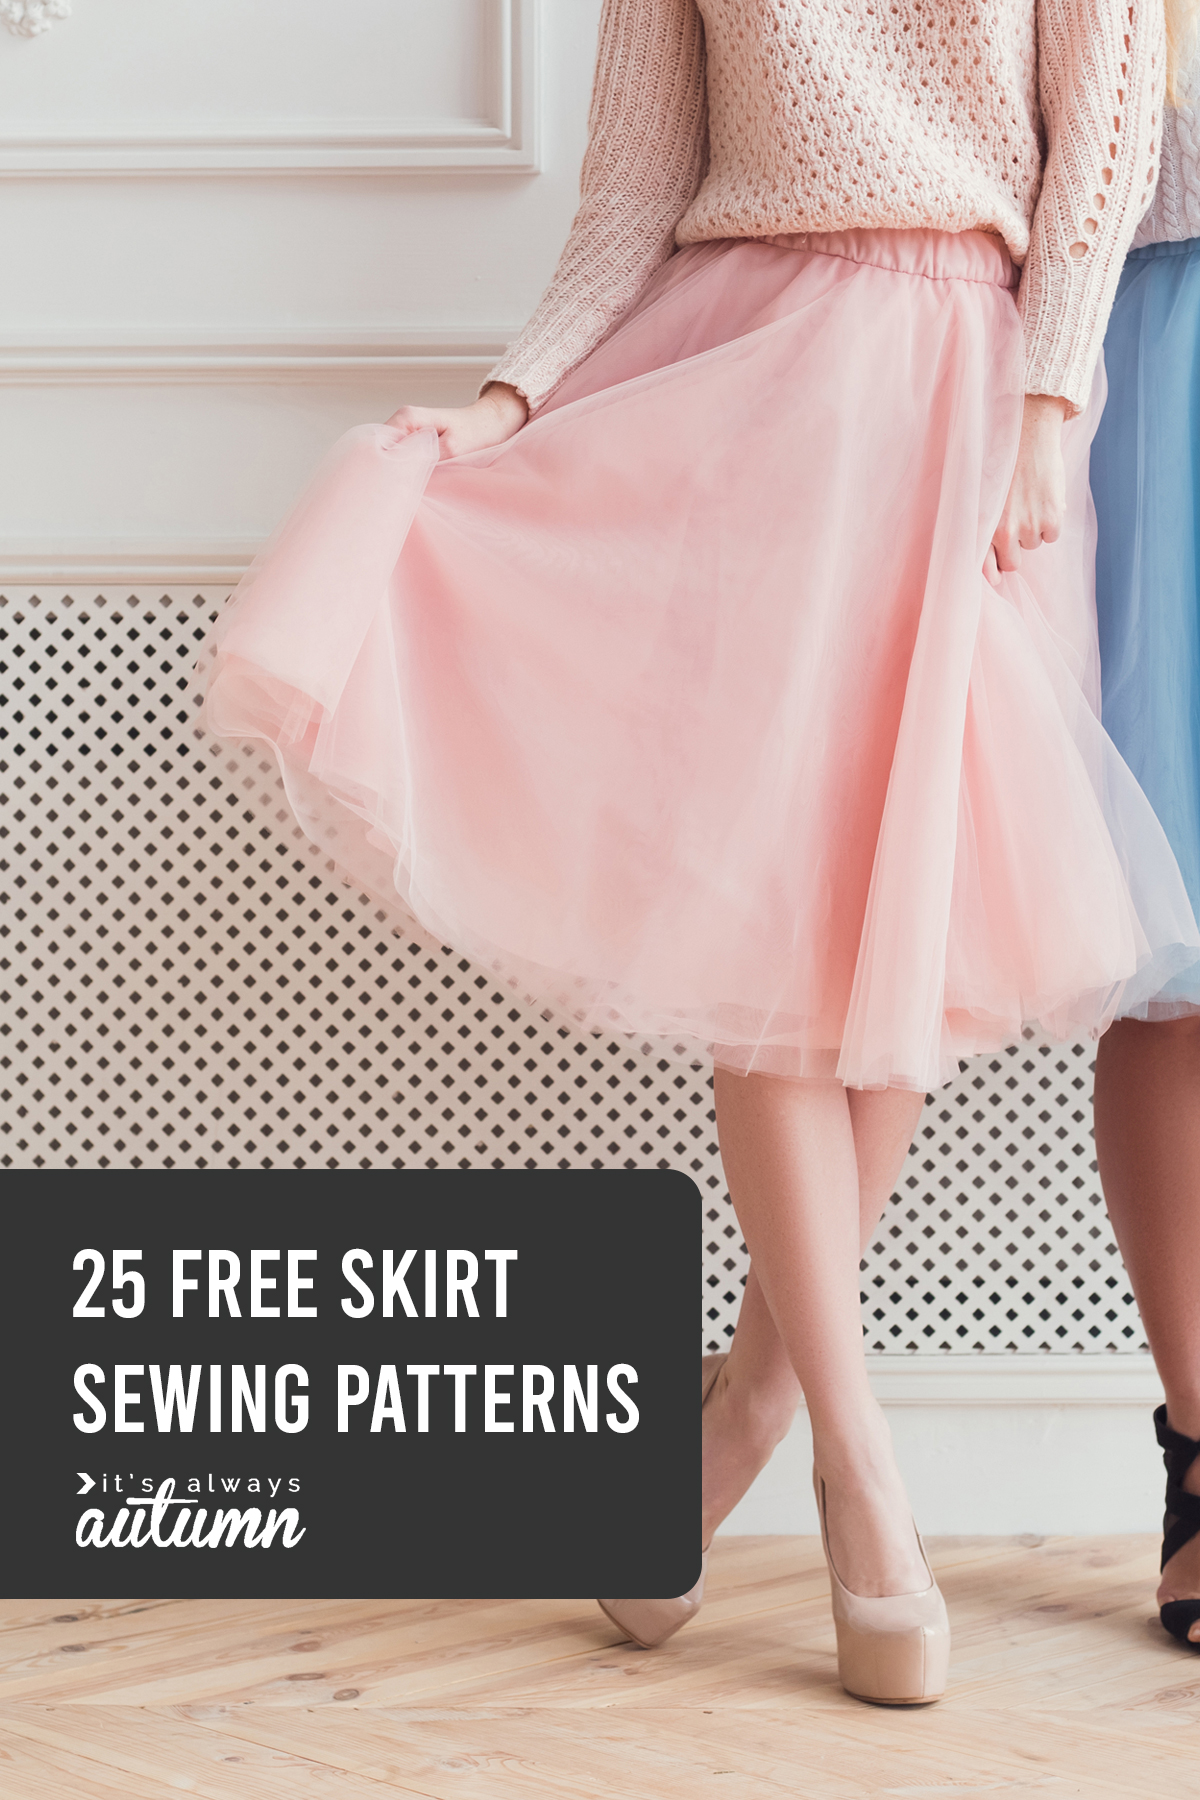 Woman in a fluffy pink skirt; 25 free skirt patterns